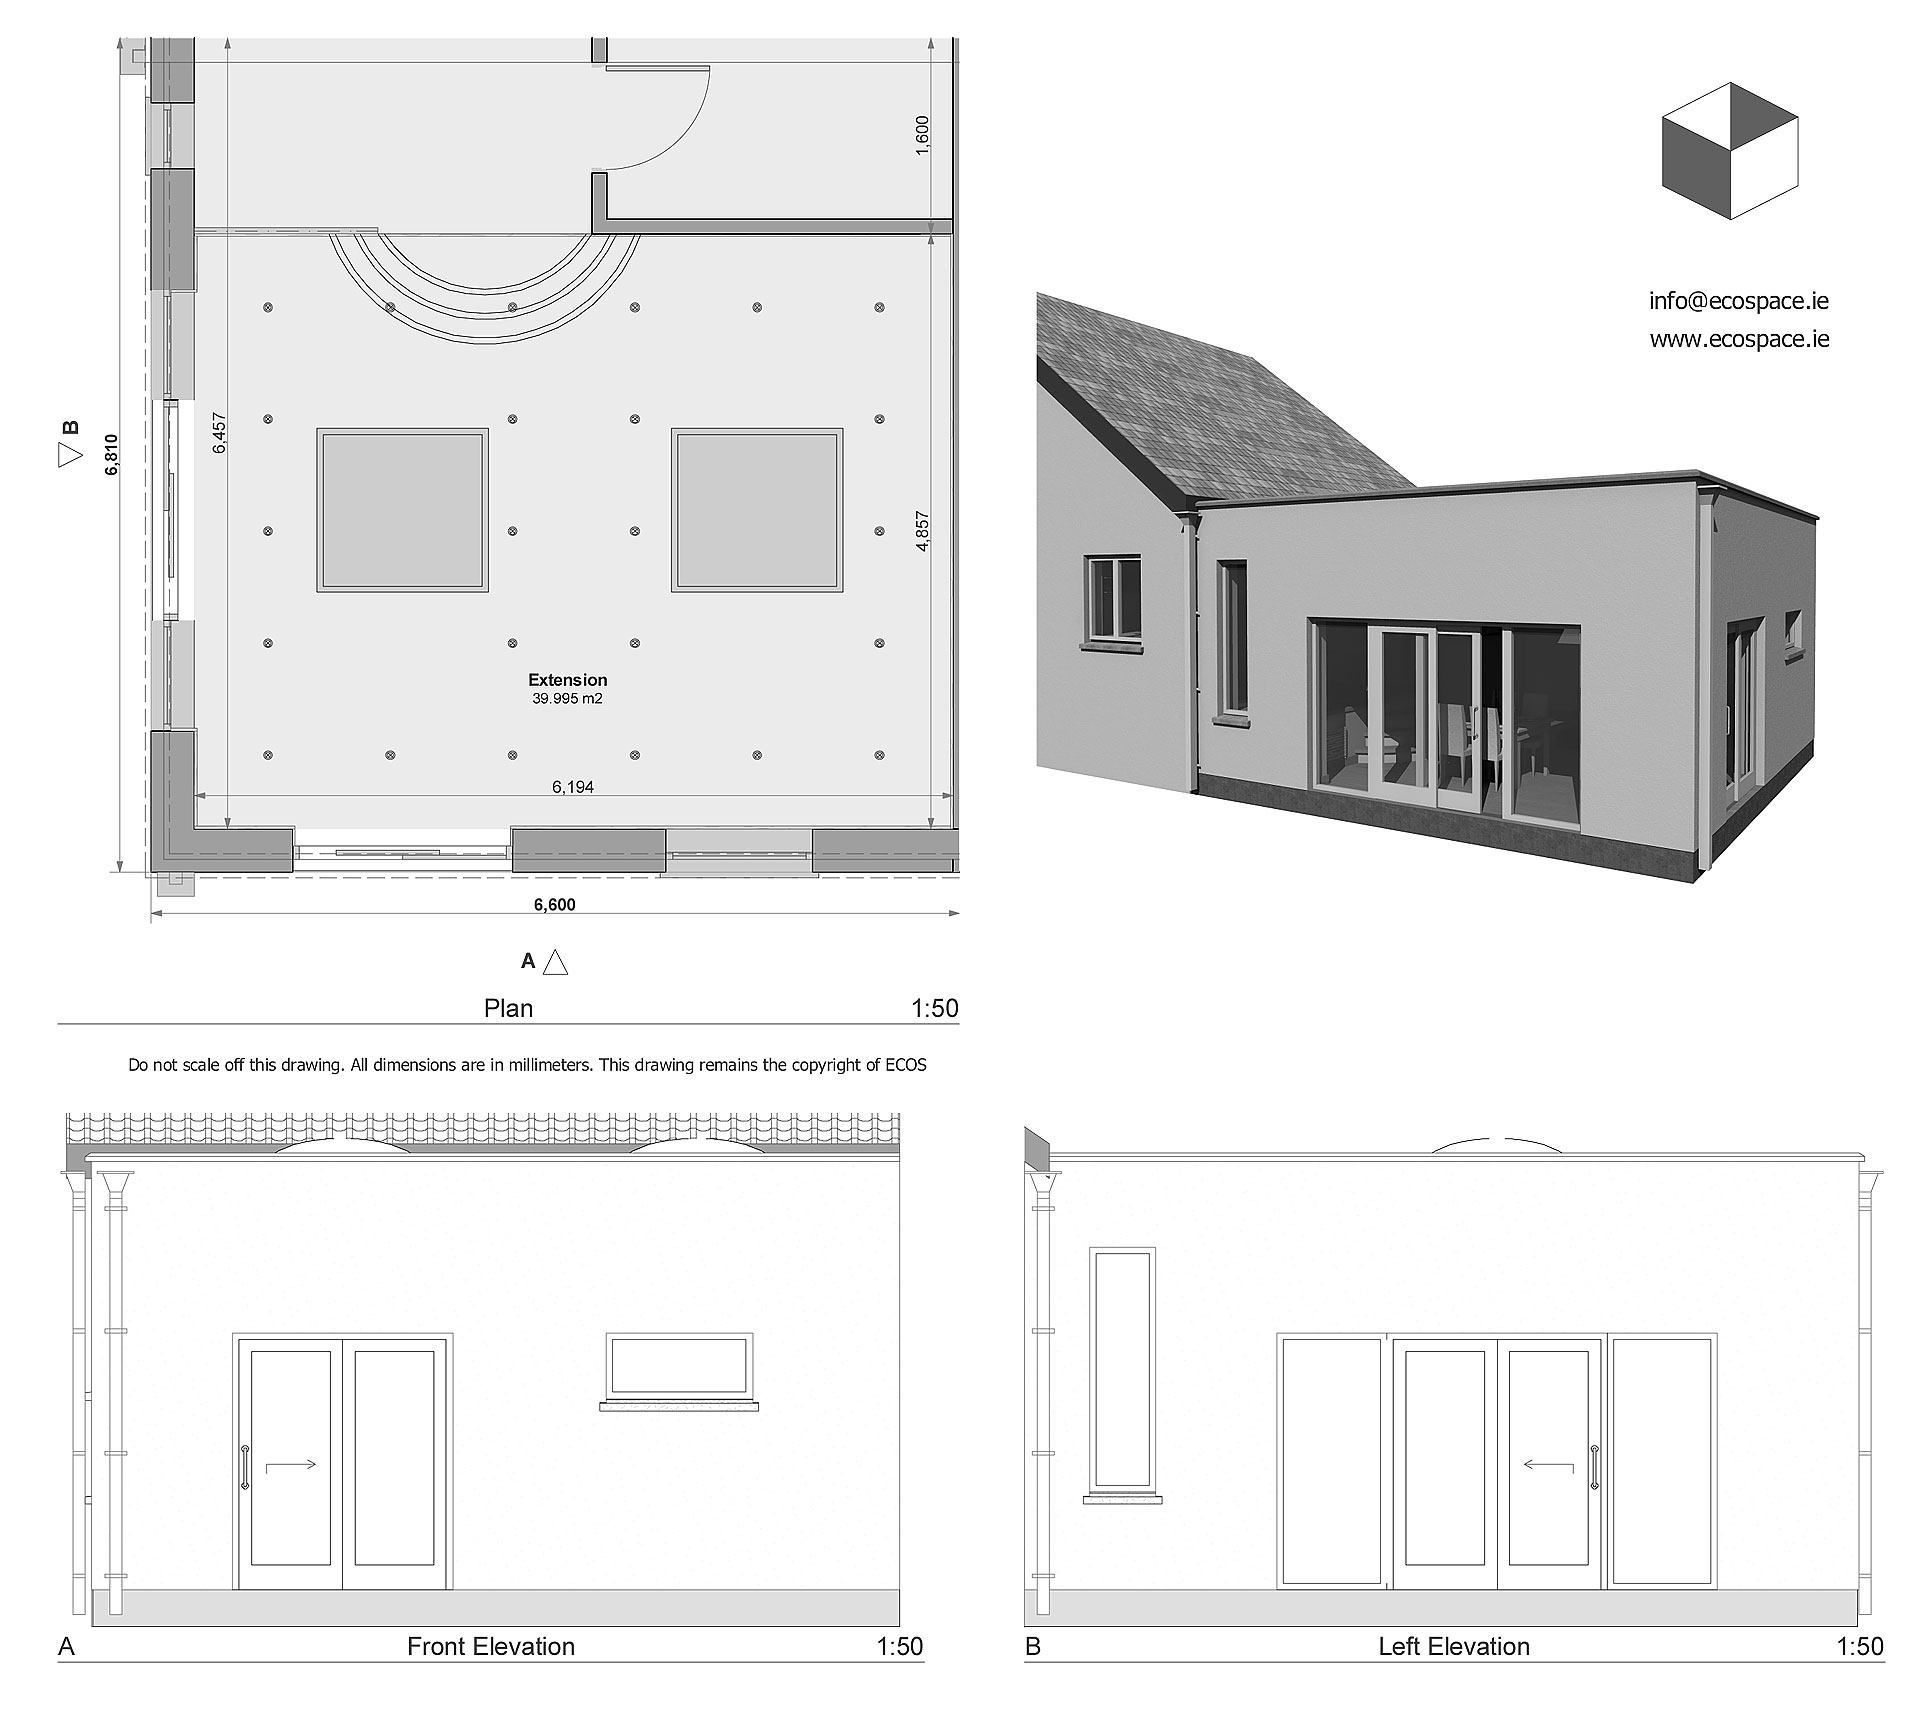 Stunning Extension House Plans Designs 1920 x 1716 · 246 kB · jpeg